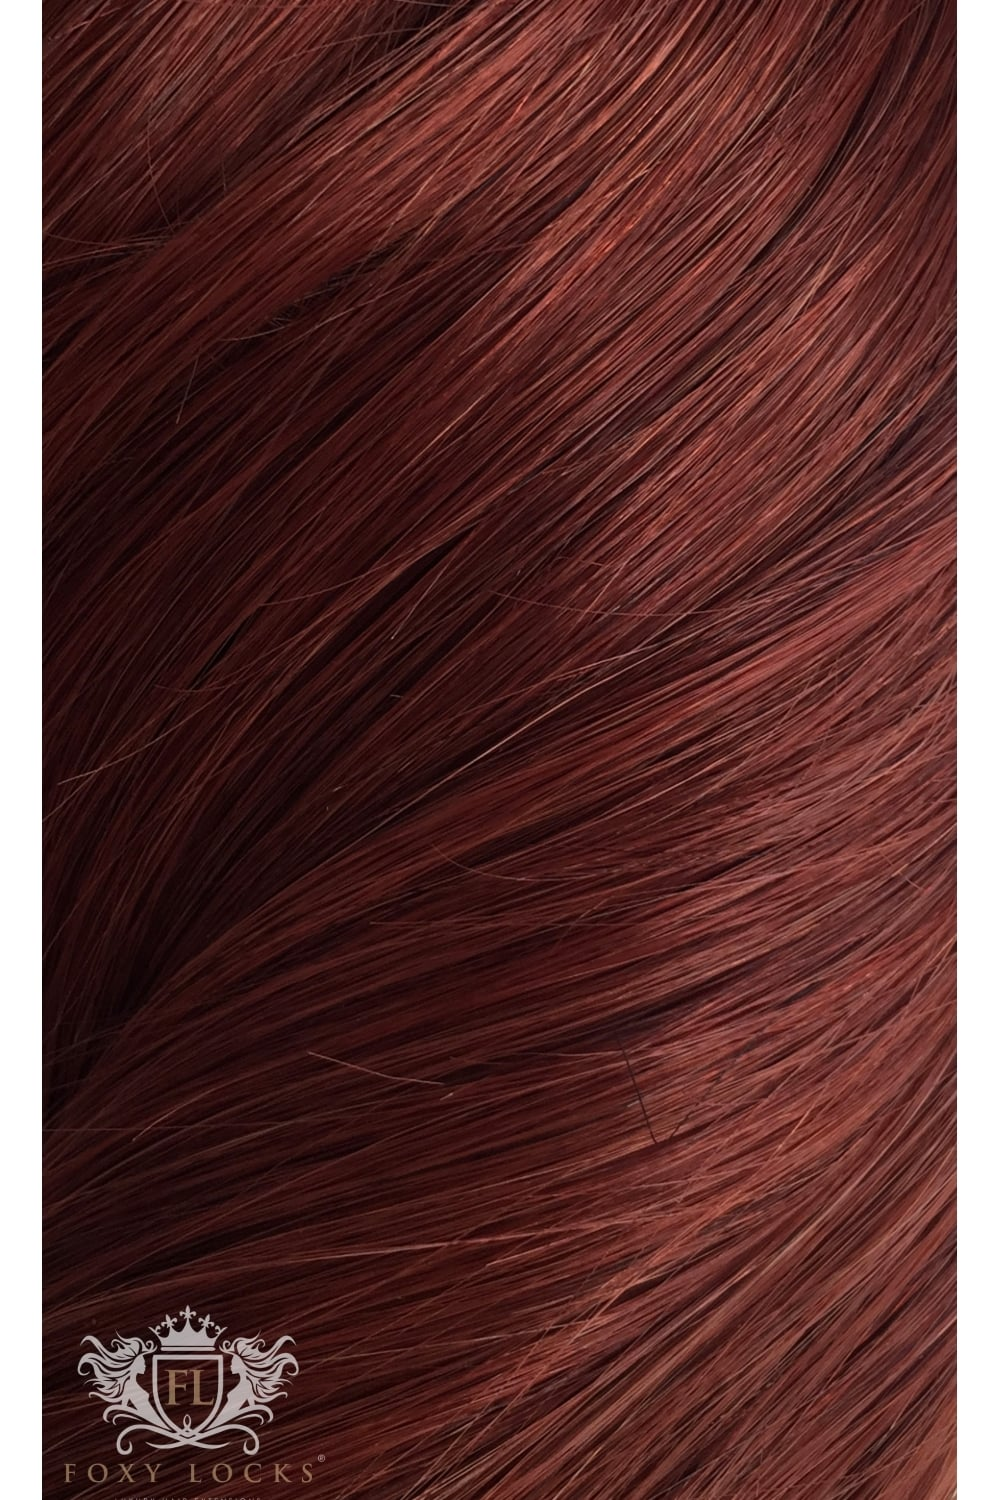 Mahogany Red 33 Regular Clip In Human Hair Extensions 125g